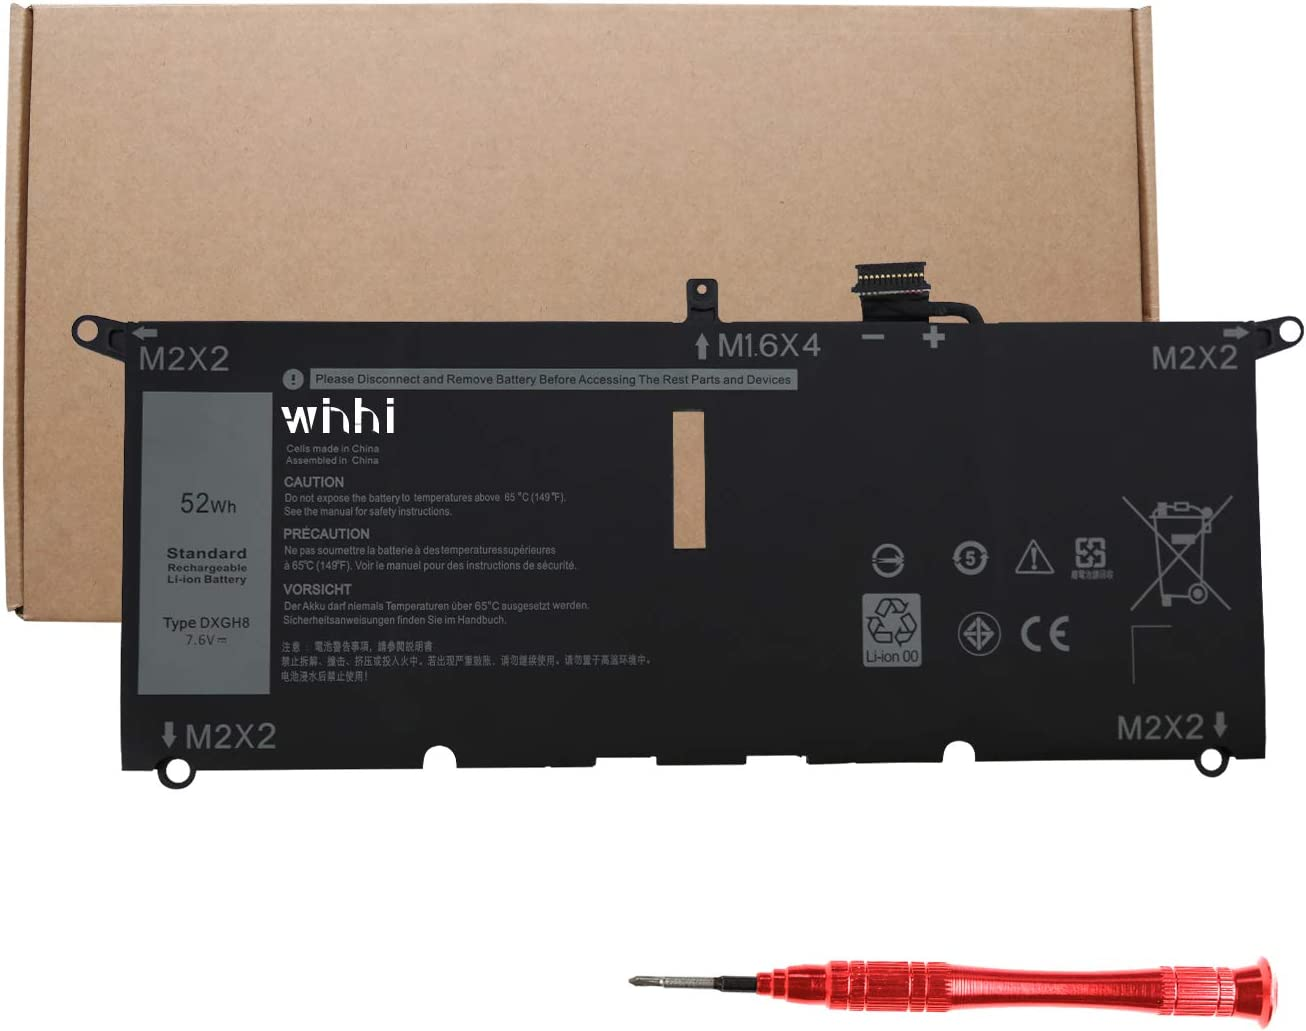 2021 WINHI New DXGH8 Laptop Battery Compatible for Dell Inspiron 13 5390 5391 7390 2-in-1 14 7490 XPS 13 9370 9380 Latitude 3301 E3301 Vostro 5390 5391 XPS 13-9380-D1501S 13-9380-D1505S 7.6V 52Wh